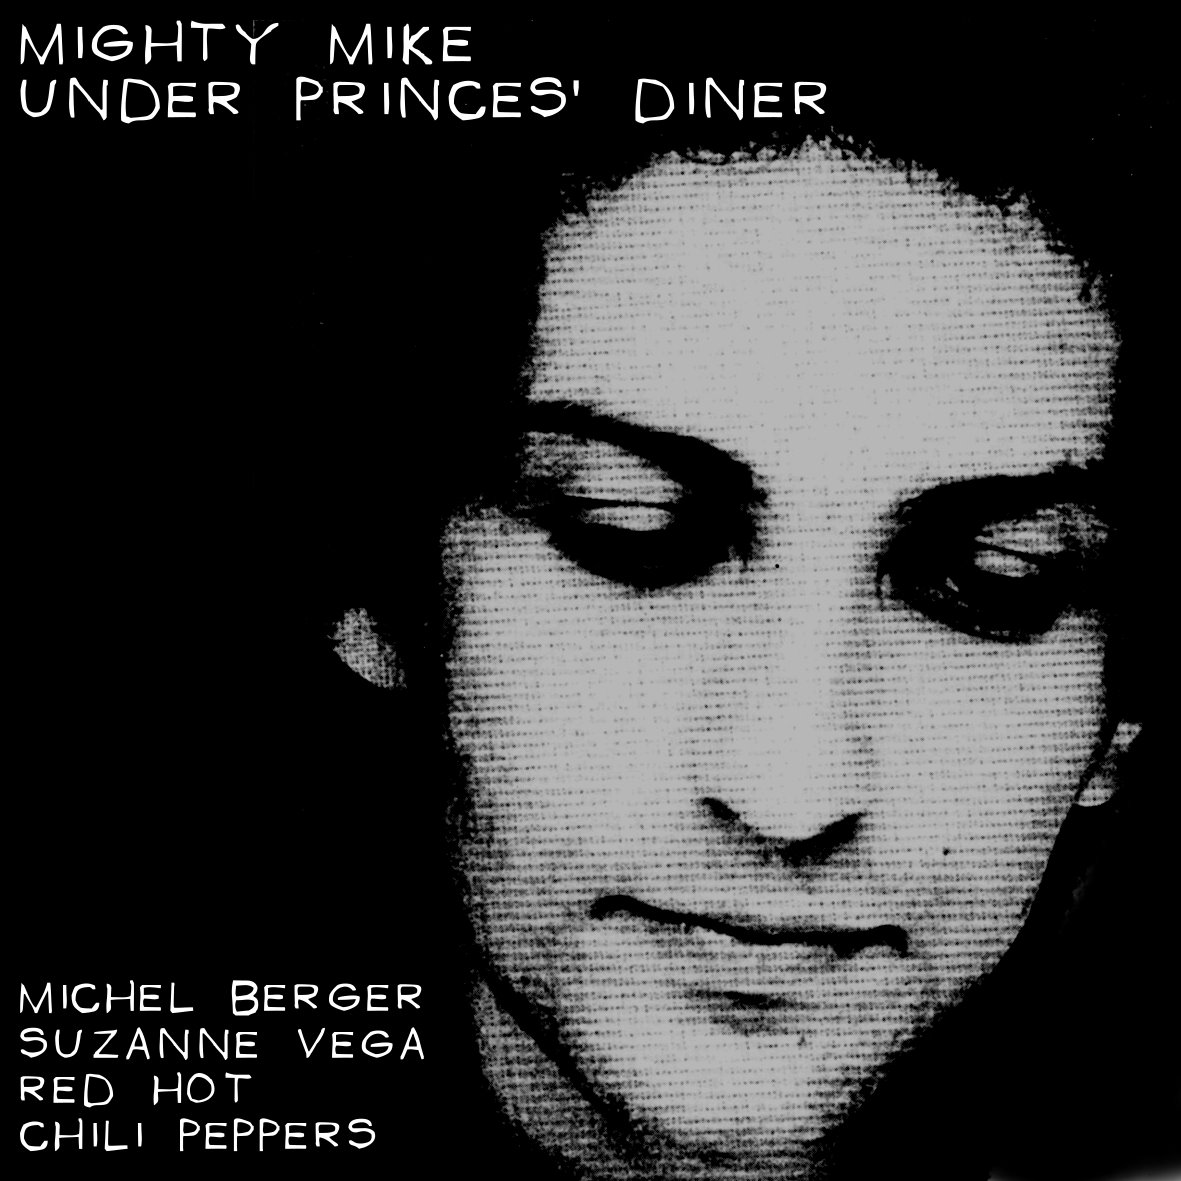 Under Princes' diner (Suzanne Vega / Red Hot Chili Peppers / Michel Berger) (2012)